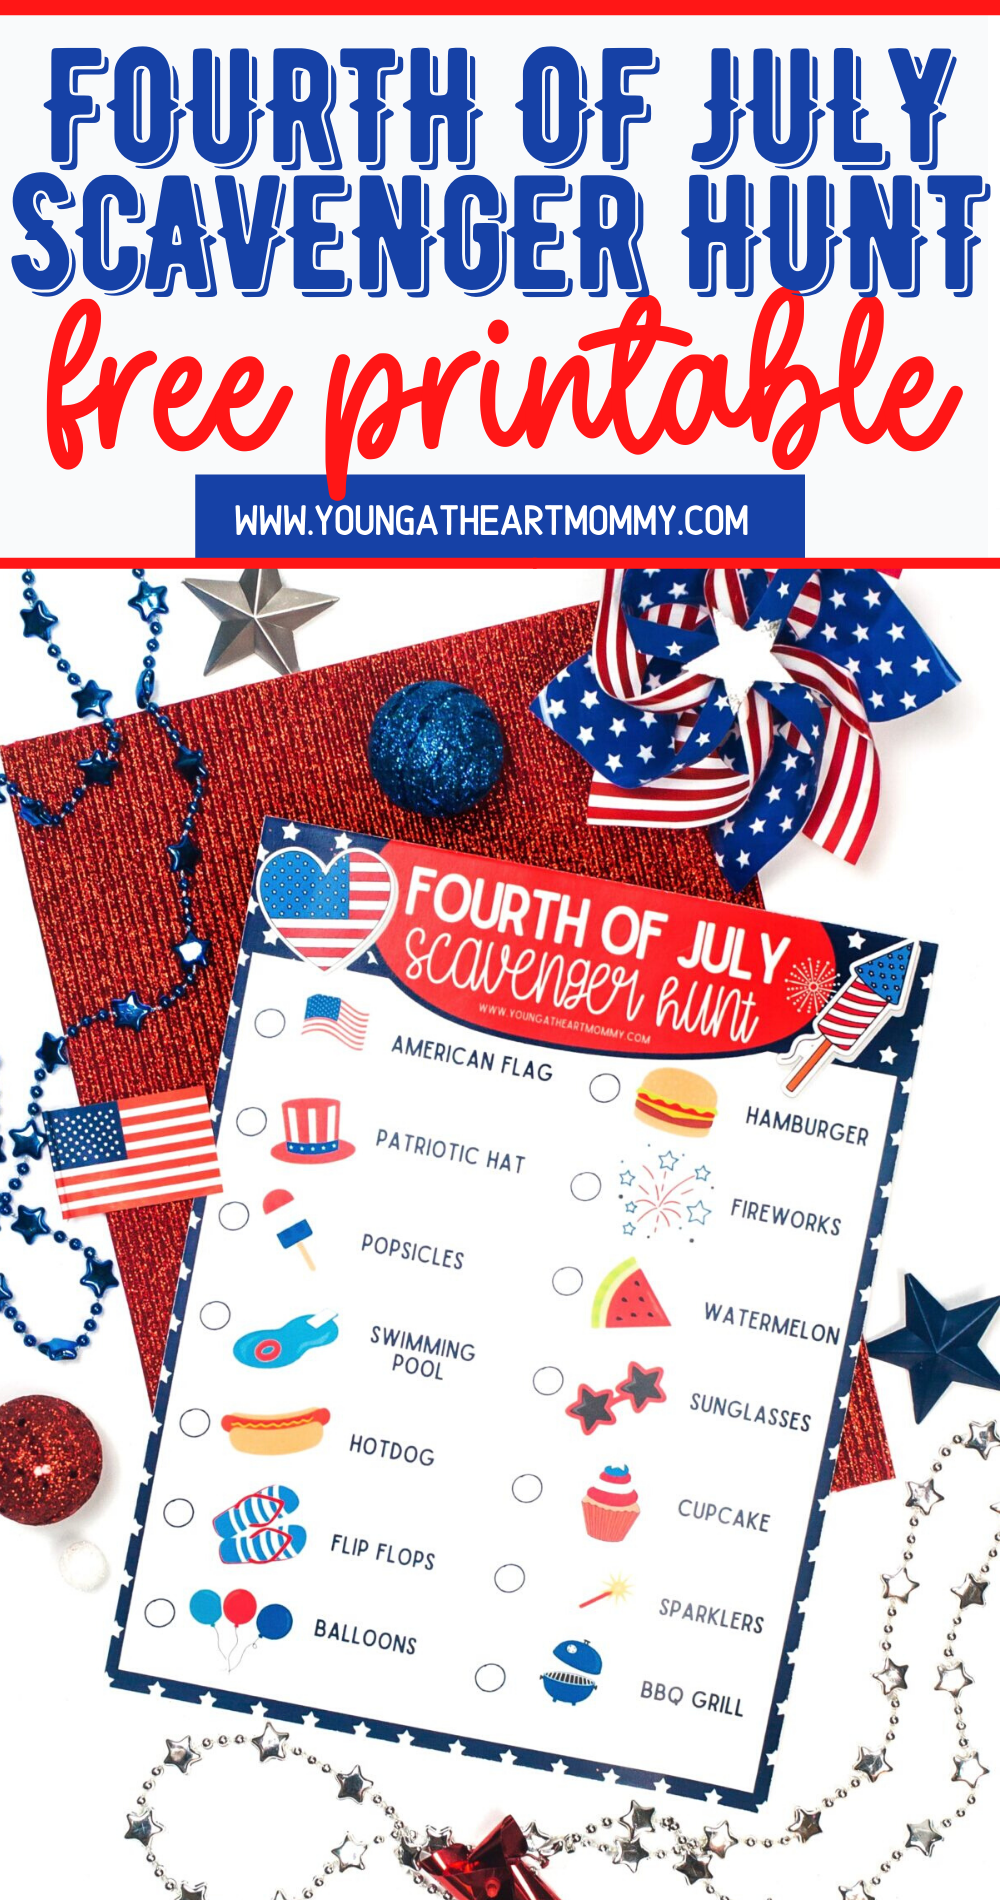 FREE Fourth of July Scavenger Hunt Printable